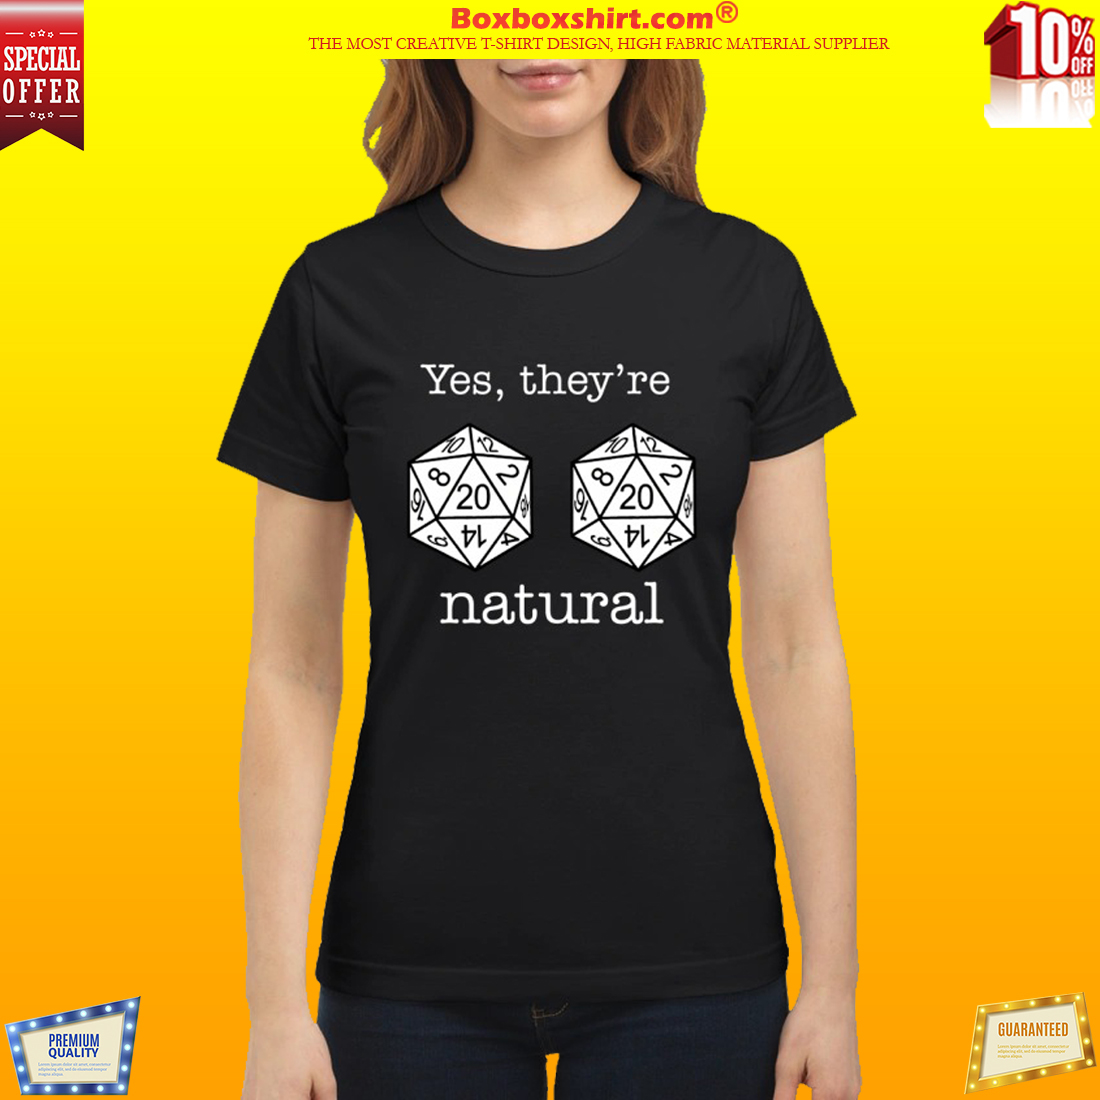 Dnd 20 dice yes they're natural t classic shirt